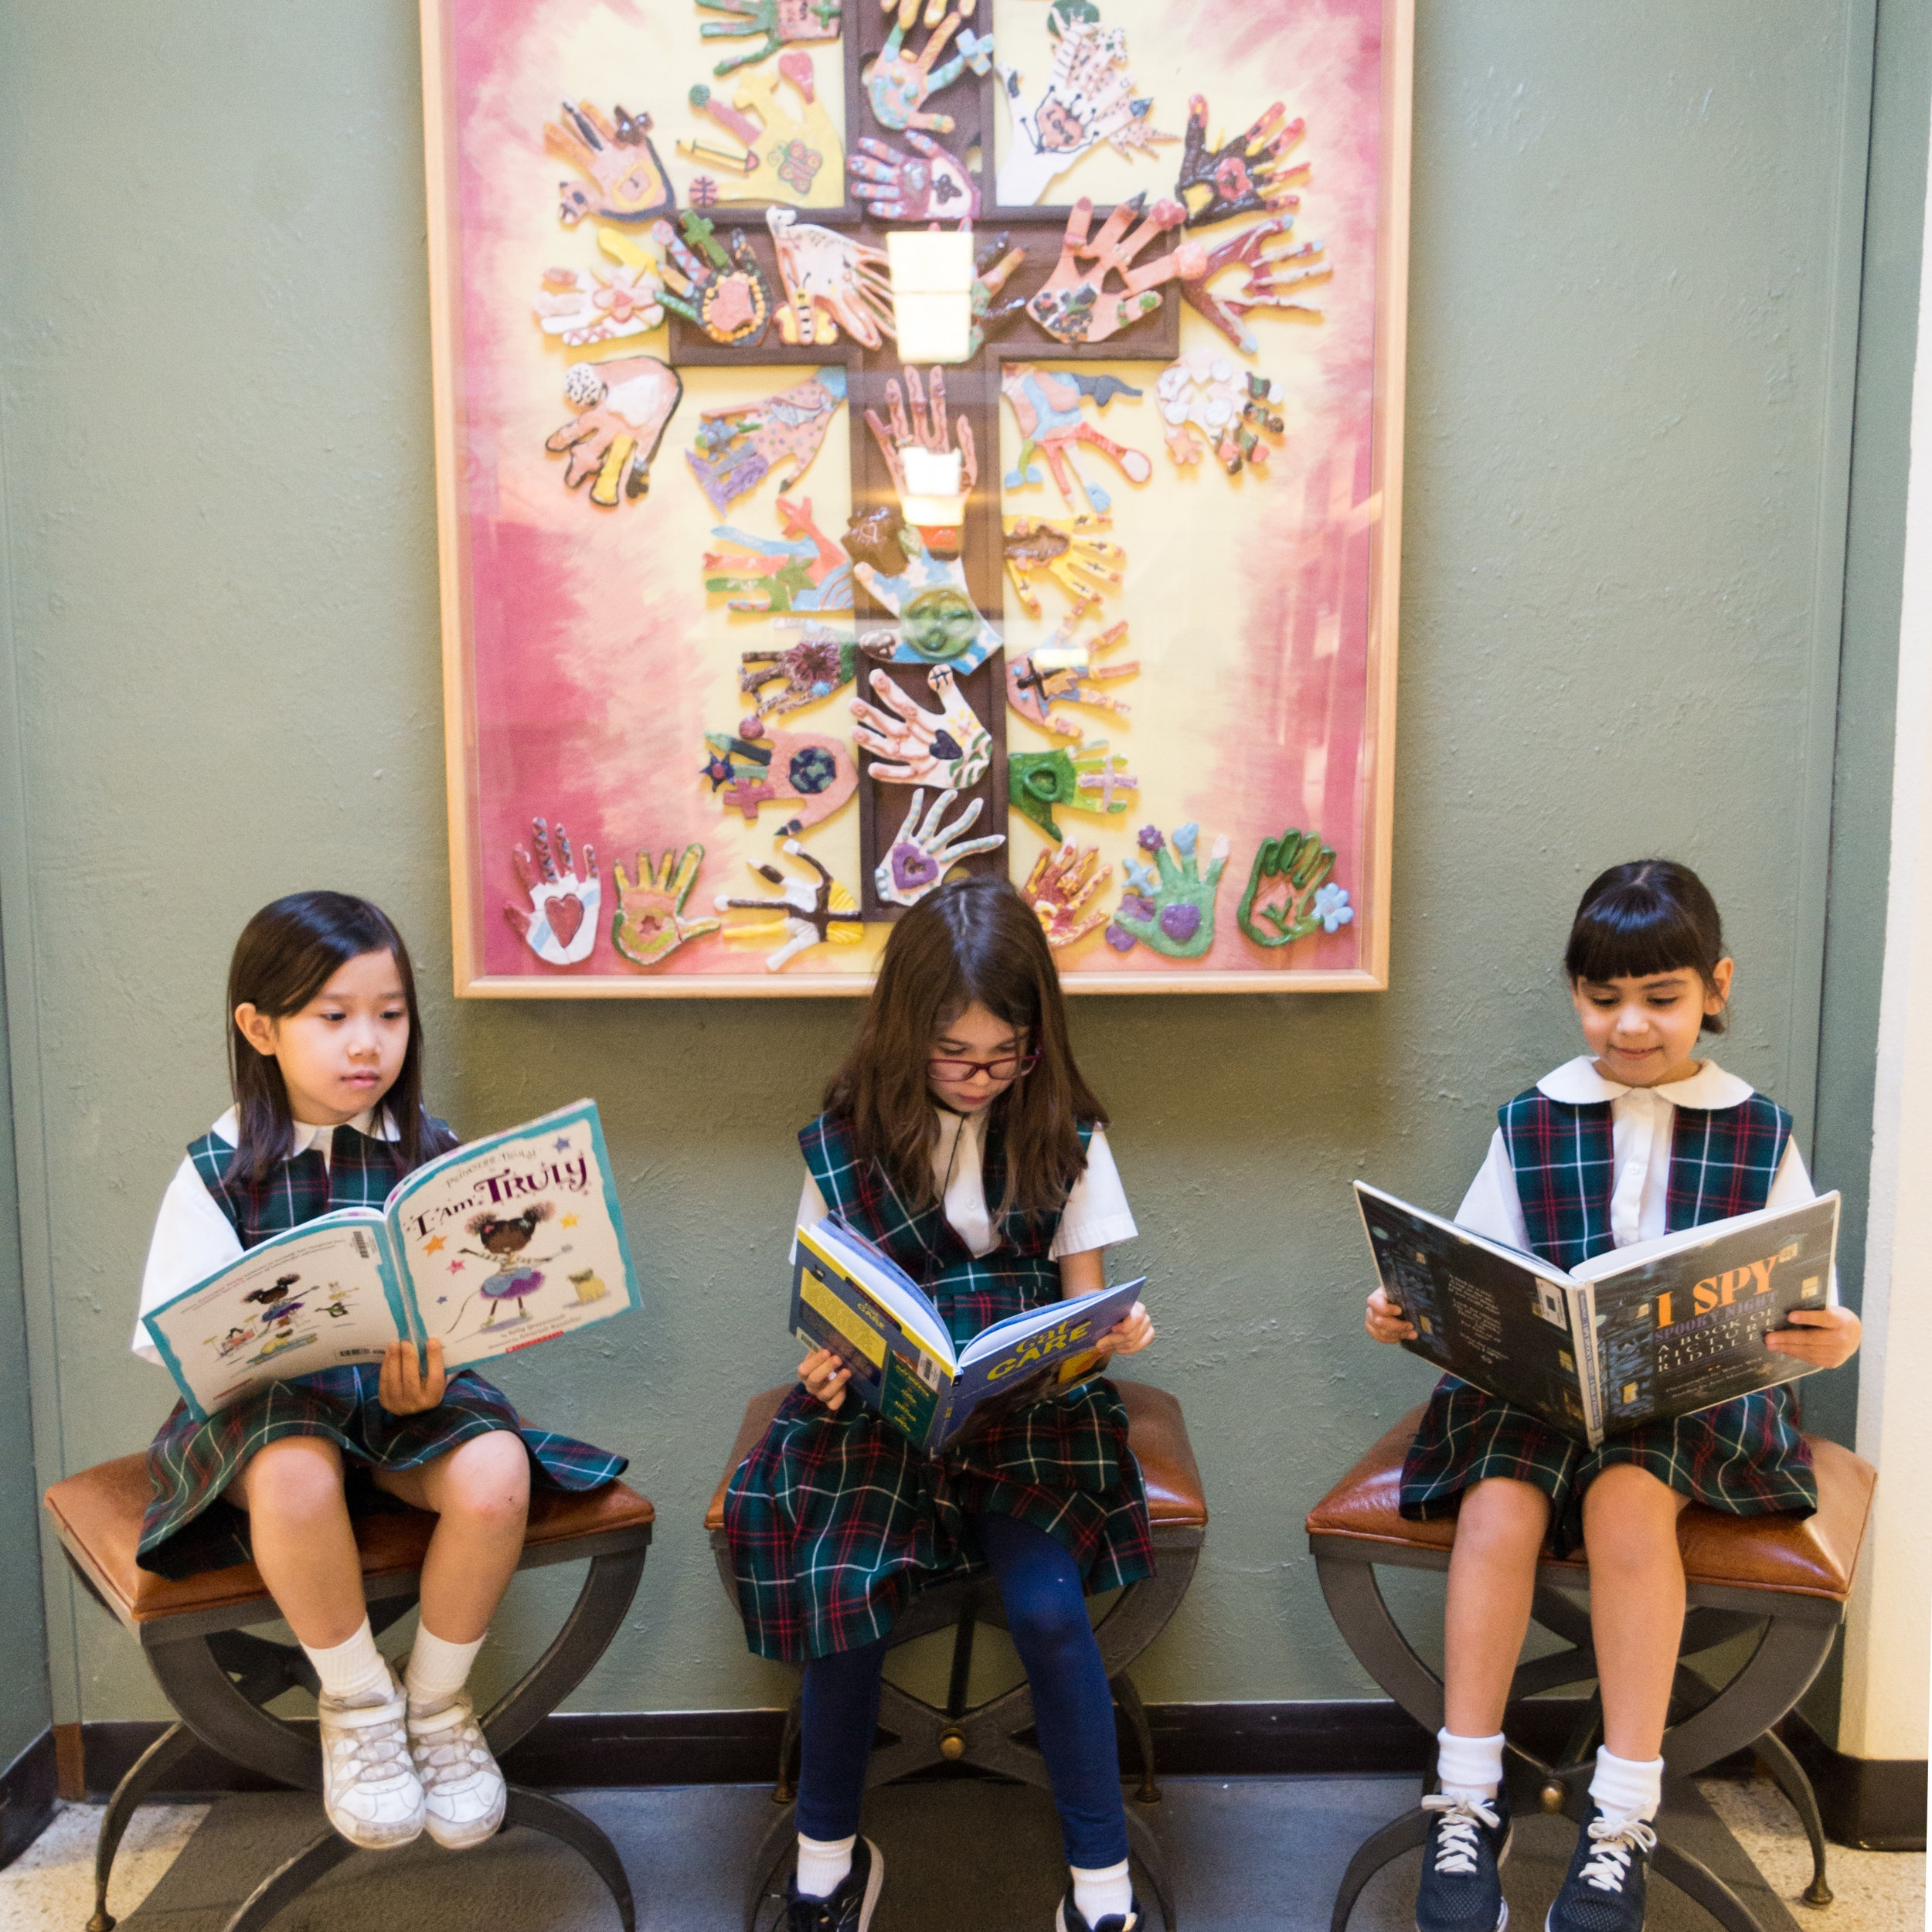 Library - Our library supports the St. Louis Catholic School curriculum and provides a well-balanced collection of print and non-print materials.  Our goals are to stimulate curiosity; enhance reading and research skills; inspire creative and critical thinking; and provide access to literature and information in both the library and the world beyond.The library sponsors a number of reading incentive programs. Students are encouraged to read books from yearly award sets: Gallery (Gr. 1-3), Bluebonnet (Gr. 3-6), and Lectio (Gr. 4-8).Resources:AlexandriaEBSCO